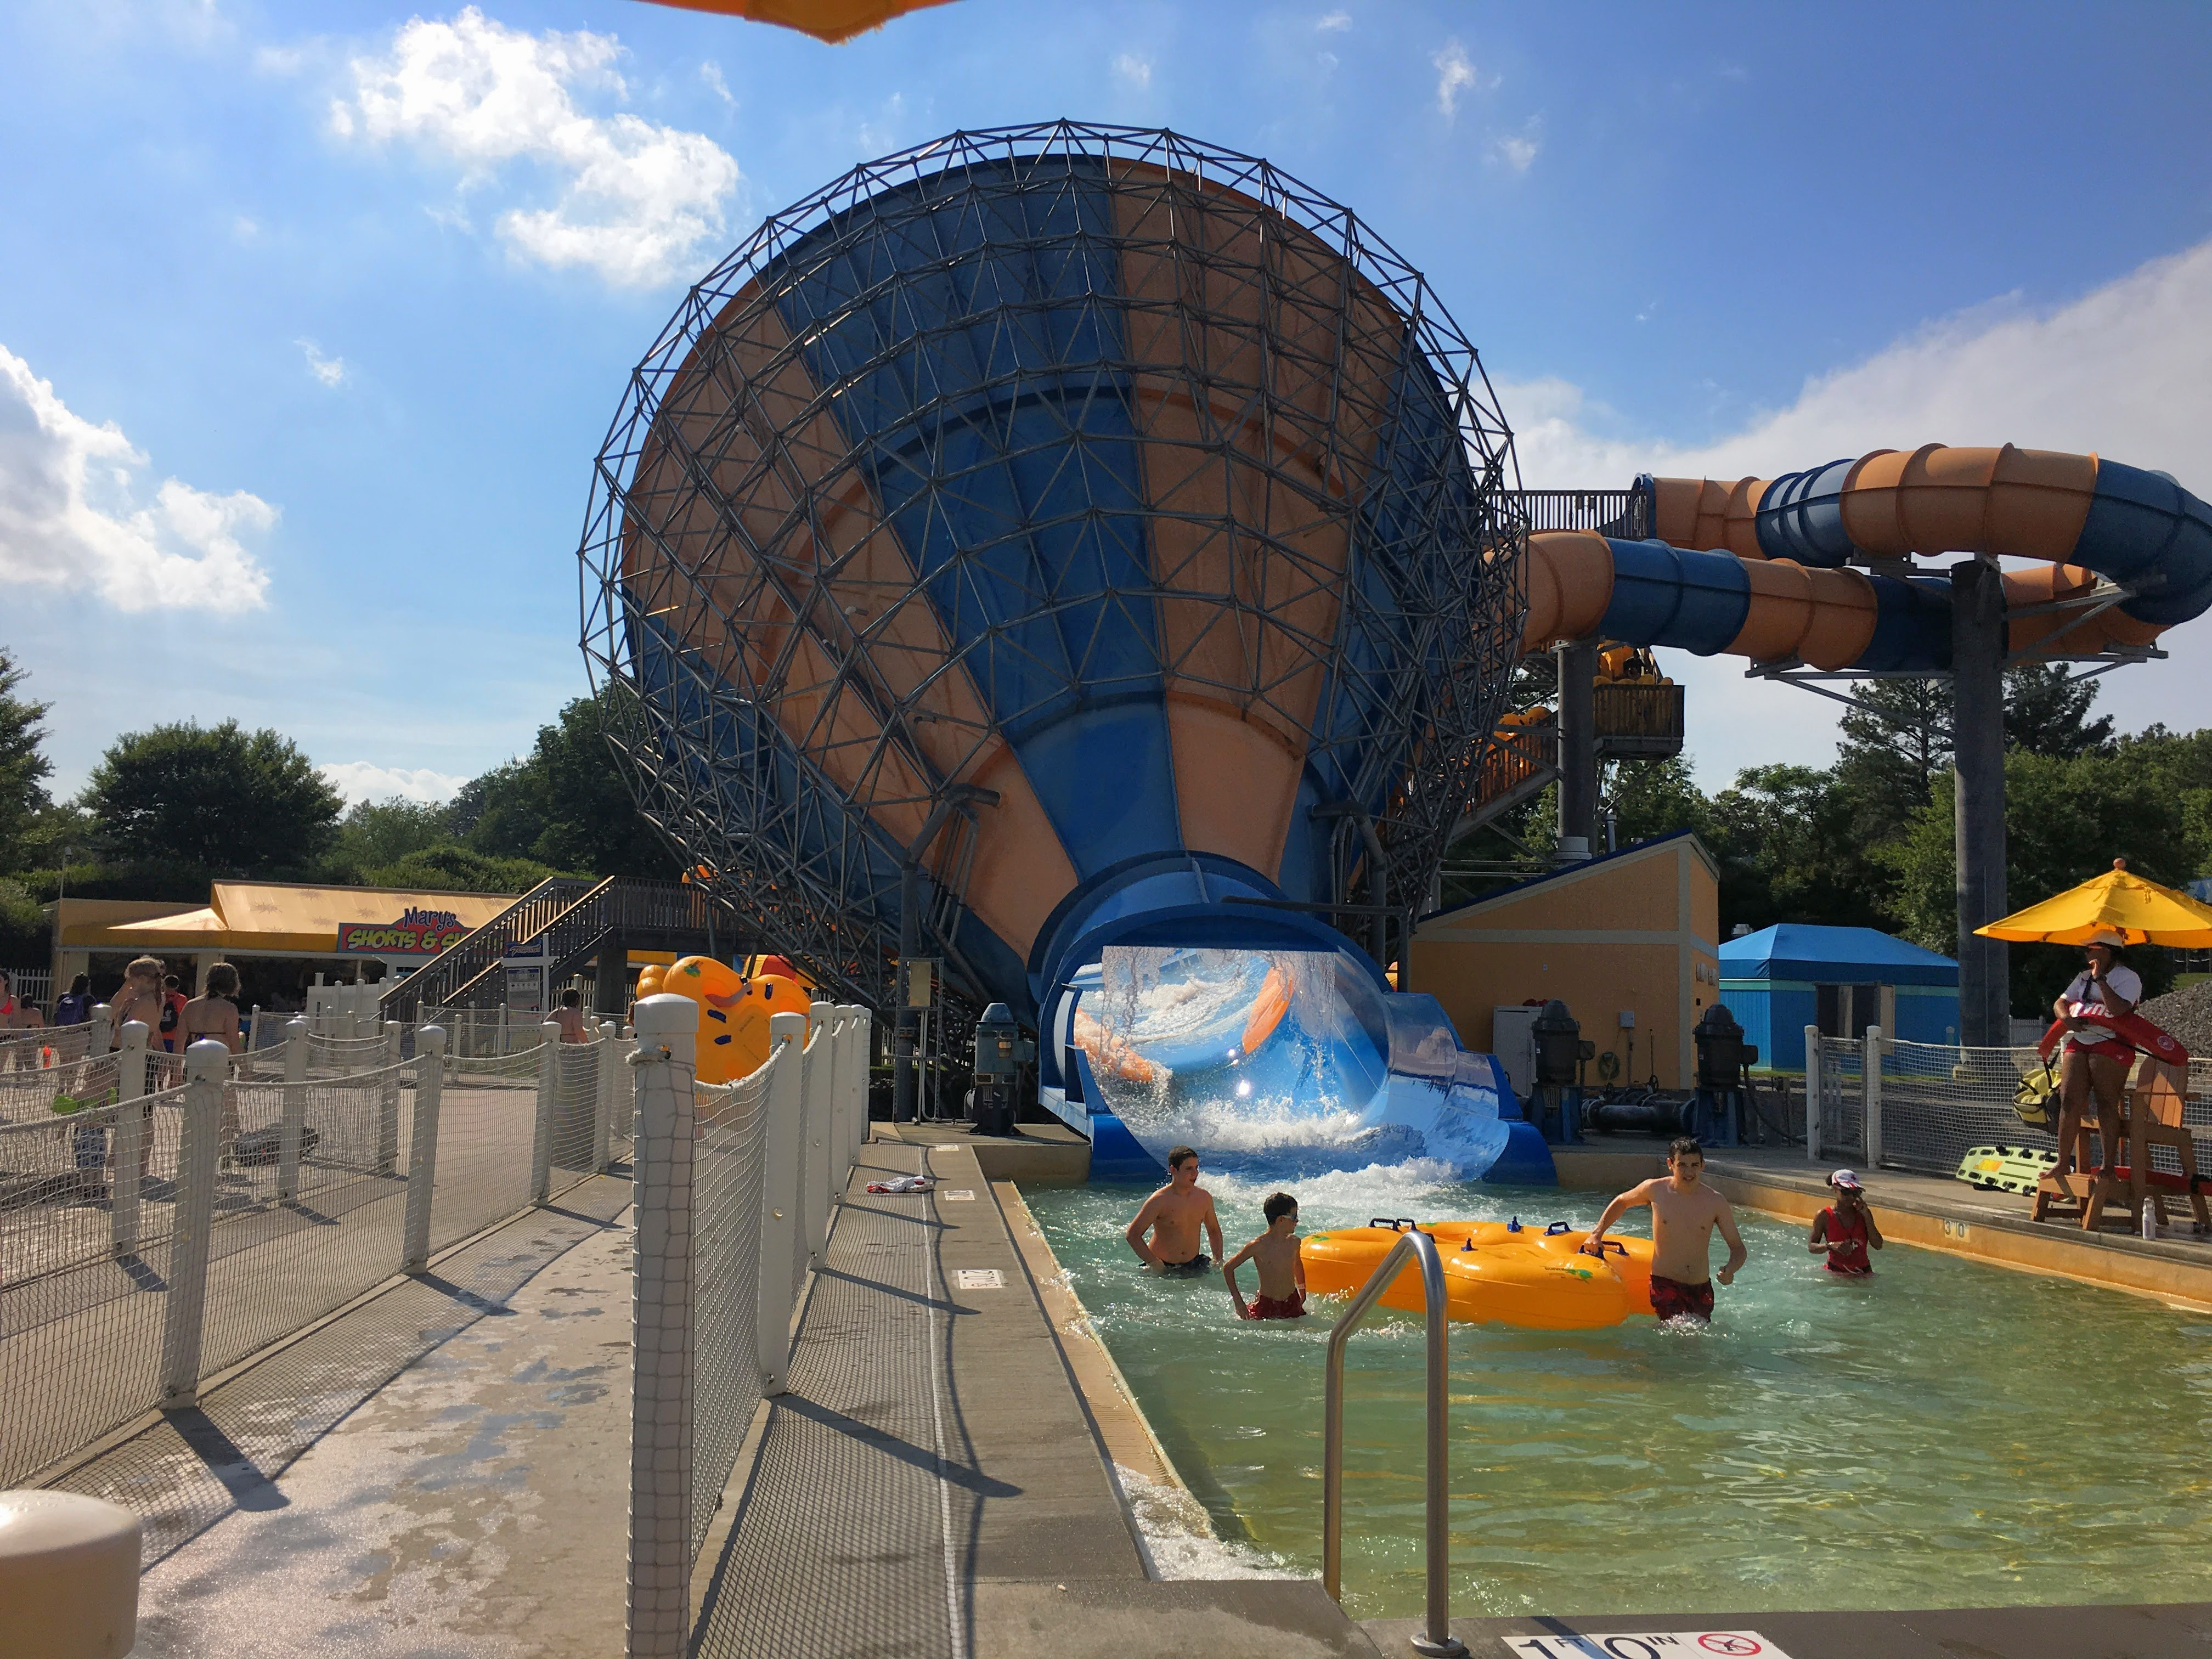 Kings dominion discount coupons - Kings Dominion Tornado Slide And Funnel Raft Ride In Soak City Va